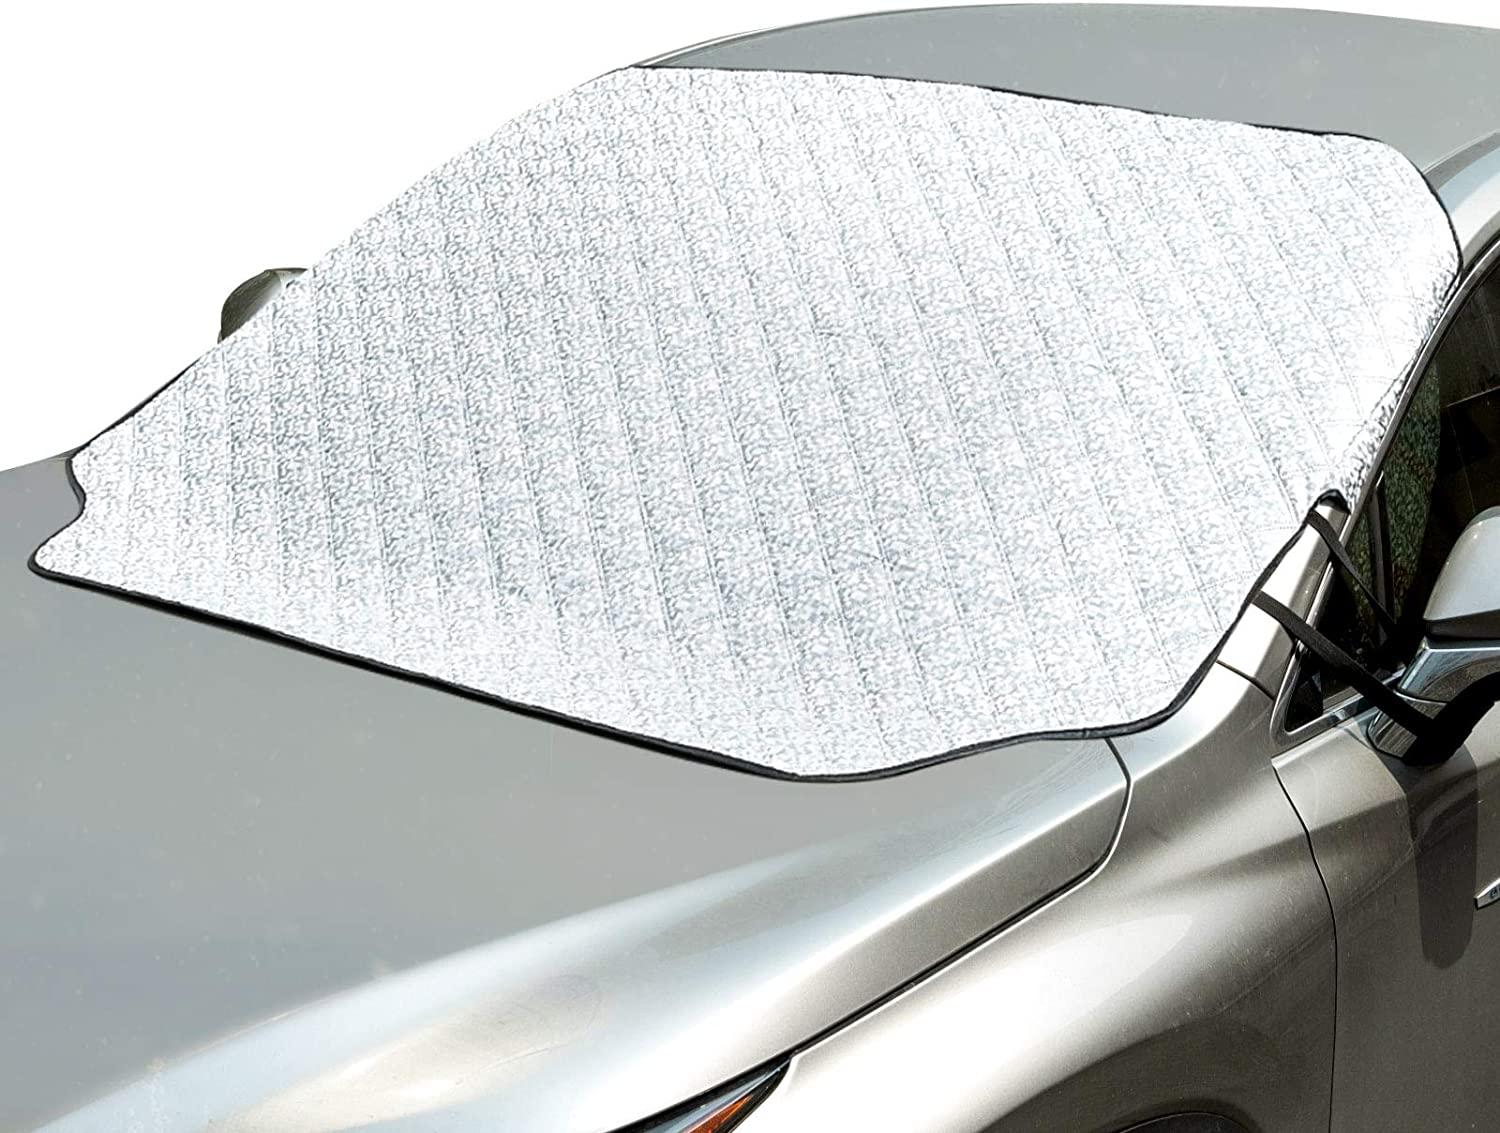 Snow Half Car Cover for Car and Truck POLYESTER SILVER Snow Frost Ice Sunshades Windshield and Side Mirrors Cover for All Weather Frost Resistant to Rain Dust UV Rays Ice 62 x 90